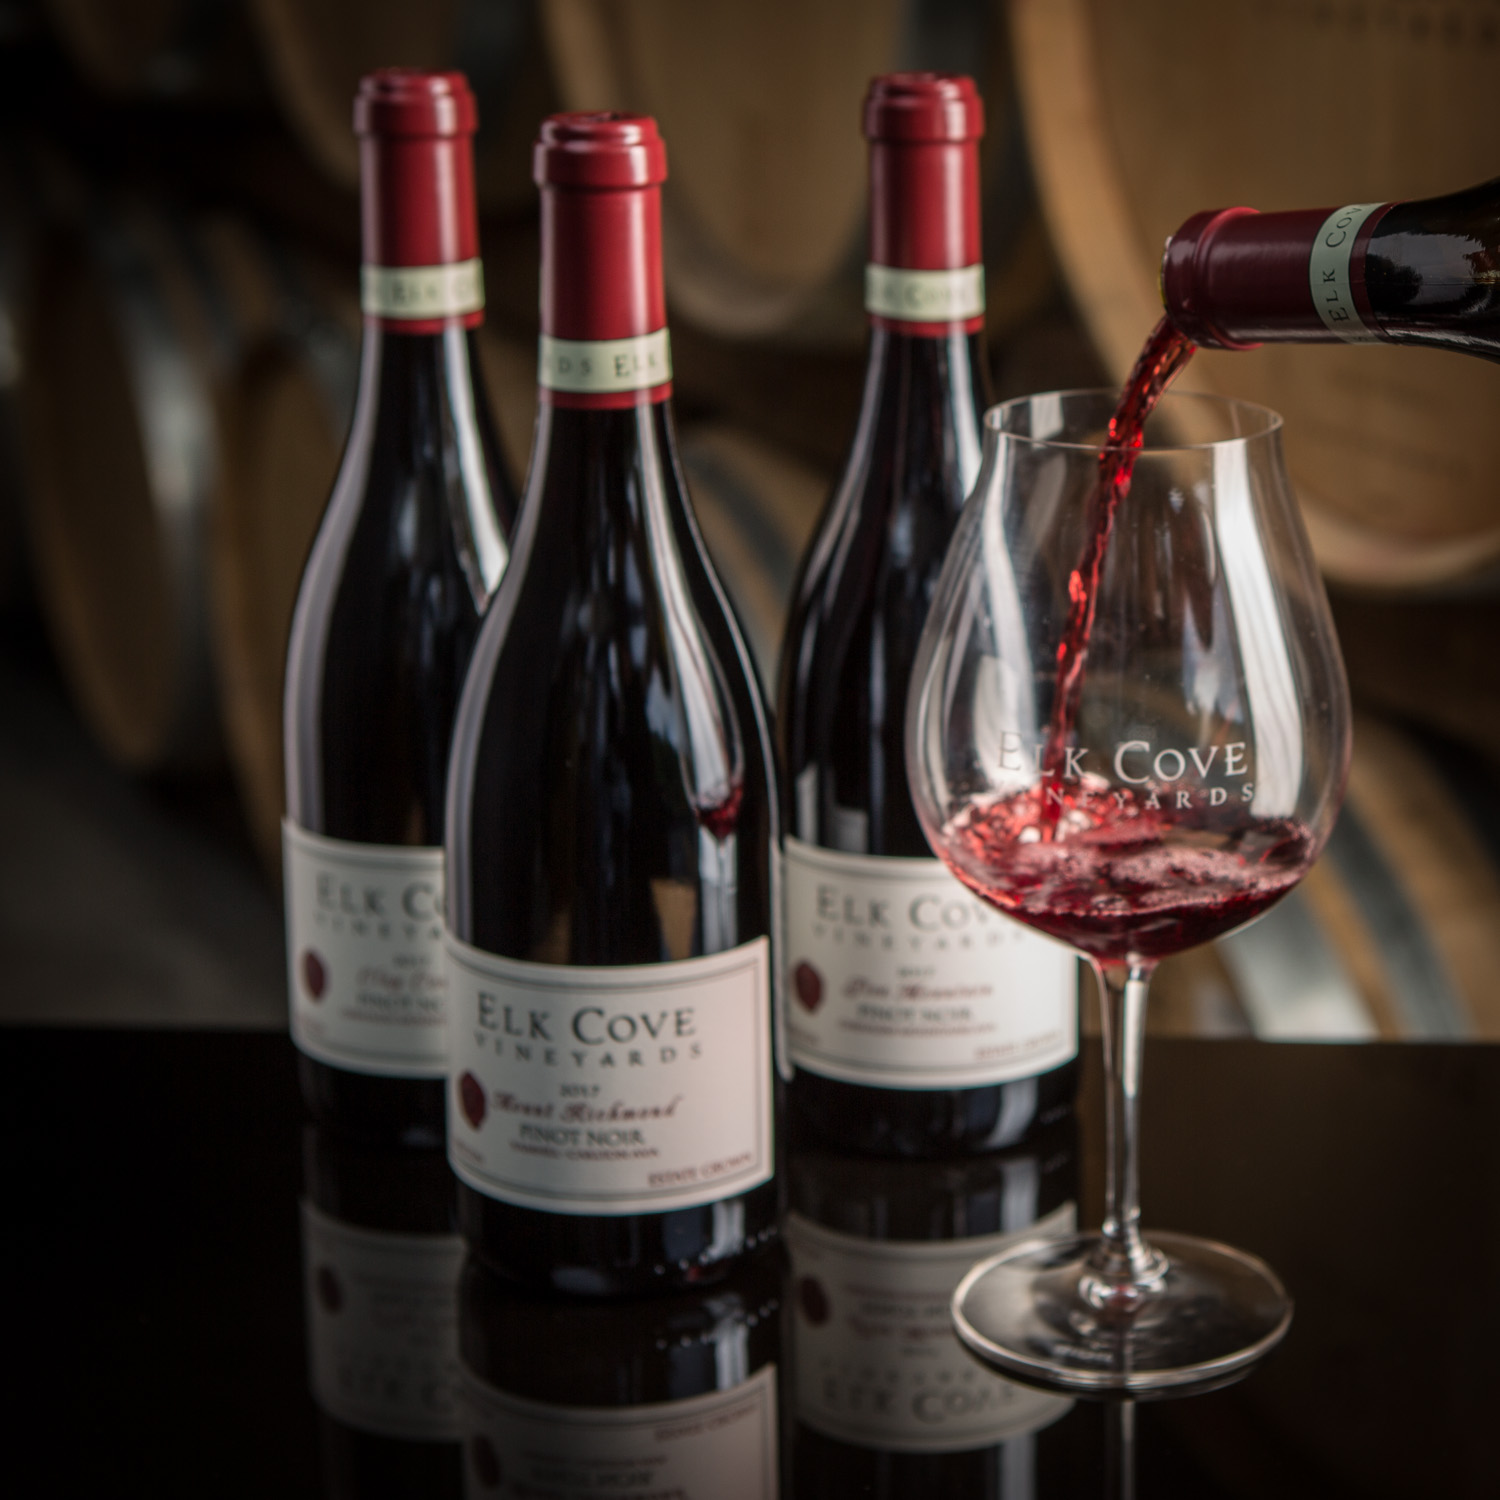 Check out our Pinots